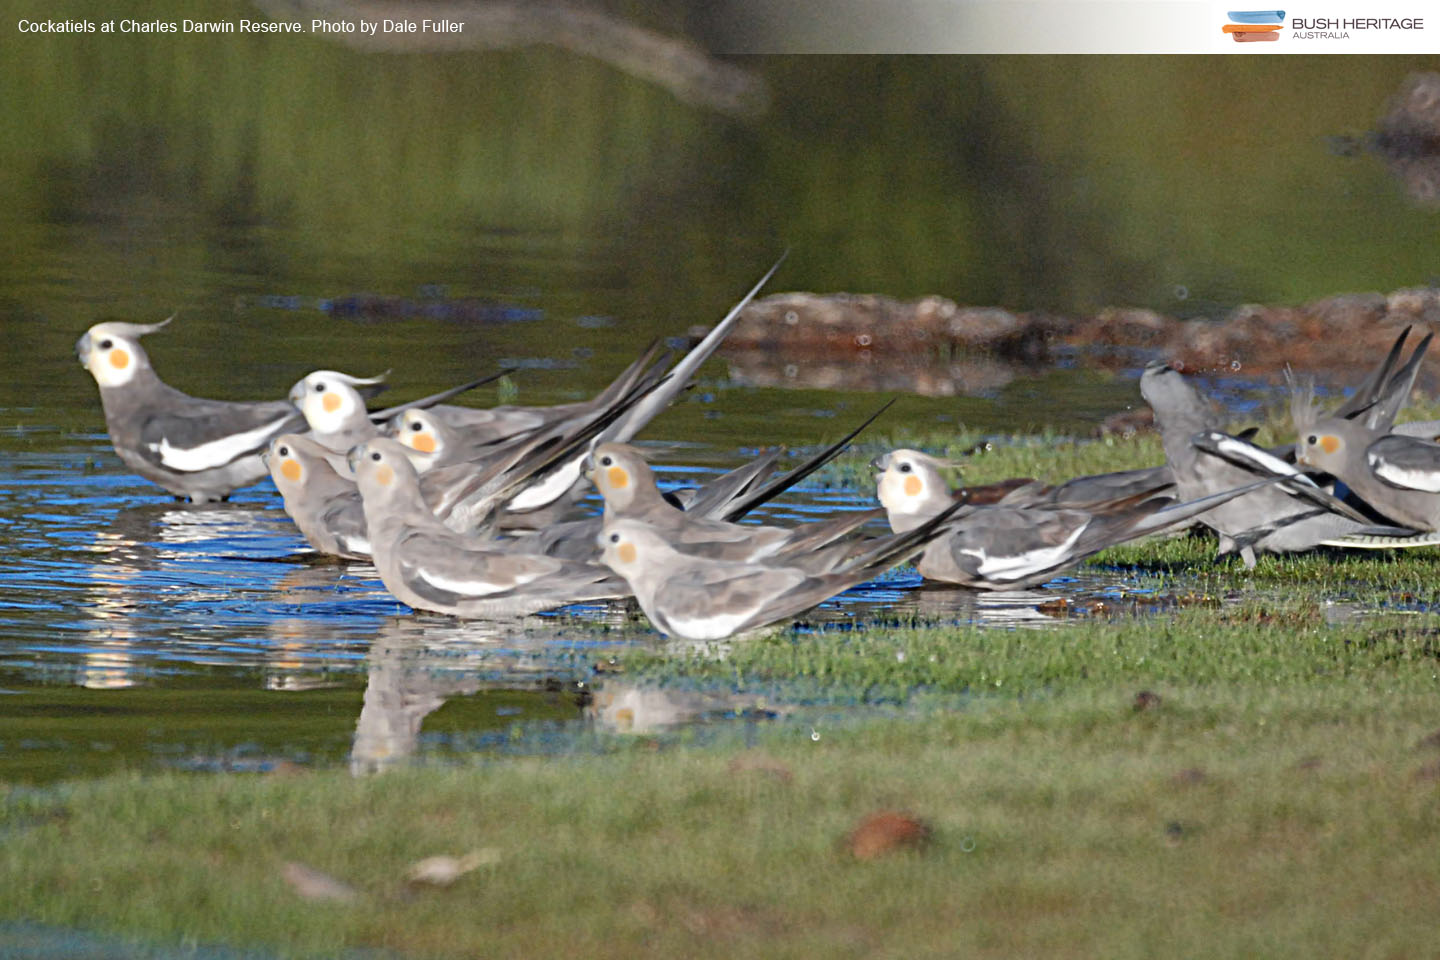 Cockatiels drinking at a waterhole on Charles Darwin Reserve, Western Australia